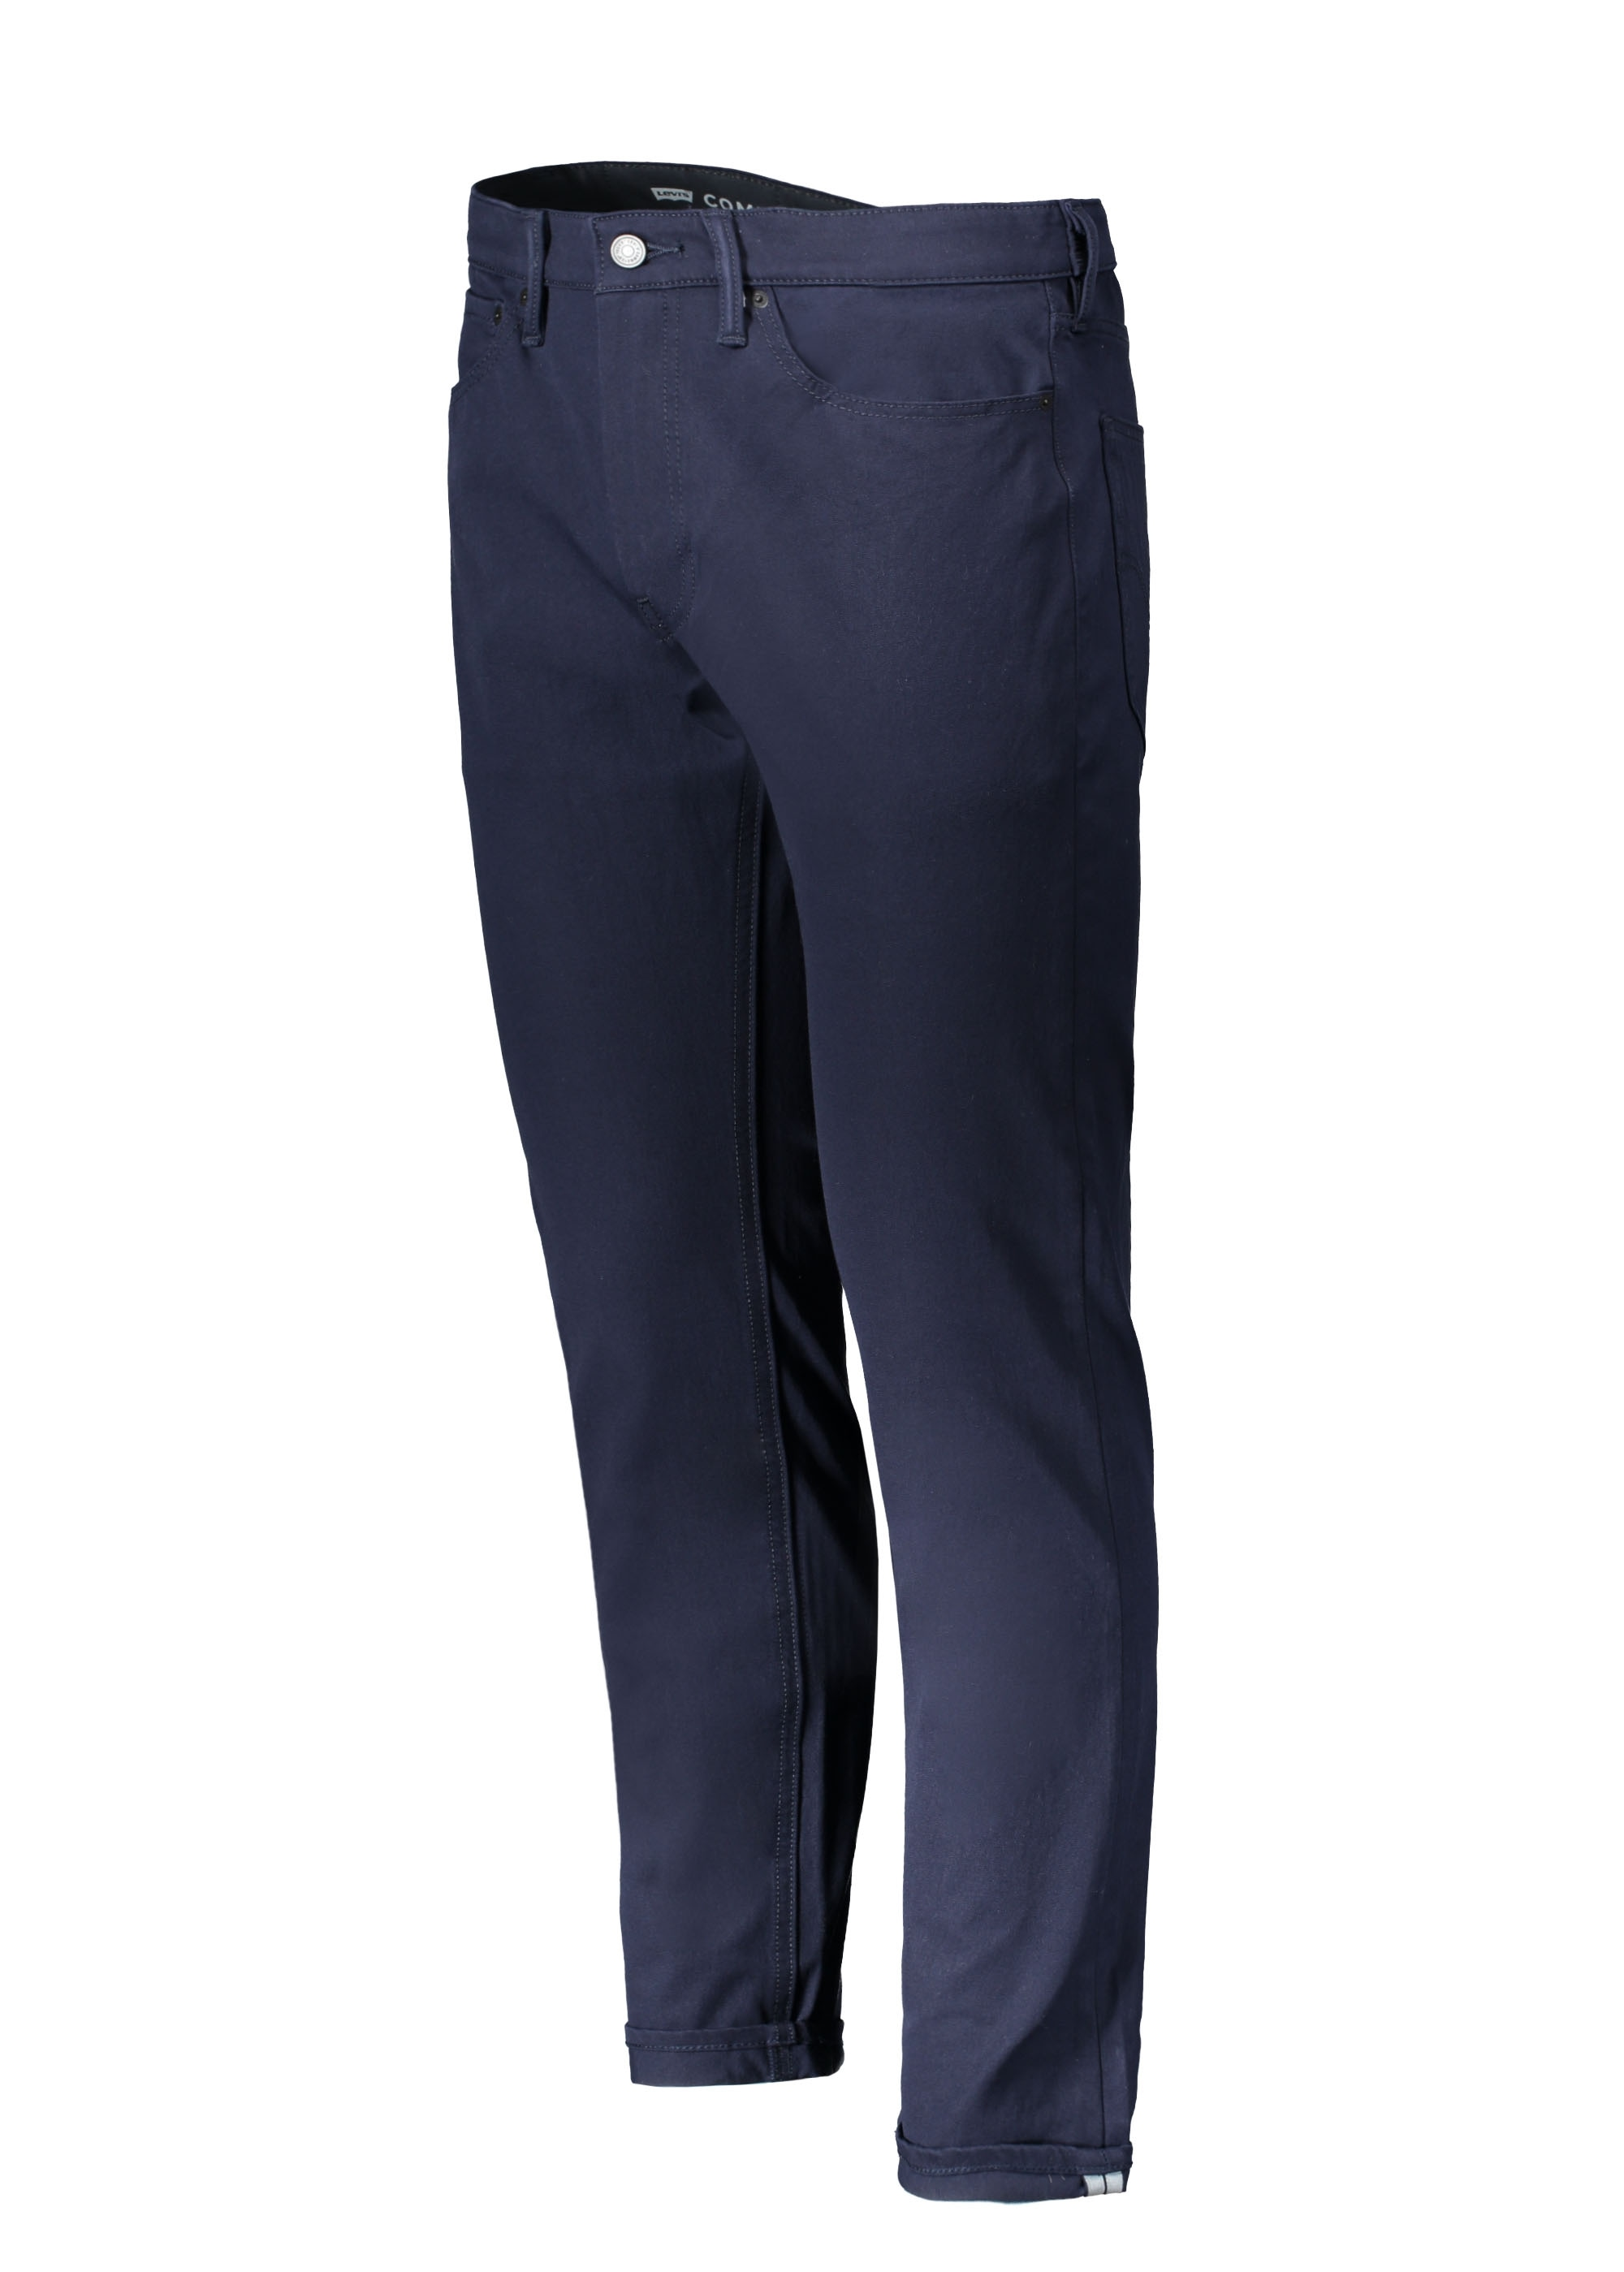 c0744f56044 Commuter Pro 511 Slim Fit - Nightwatch Blue - Jeans from Triads UK